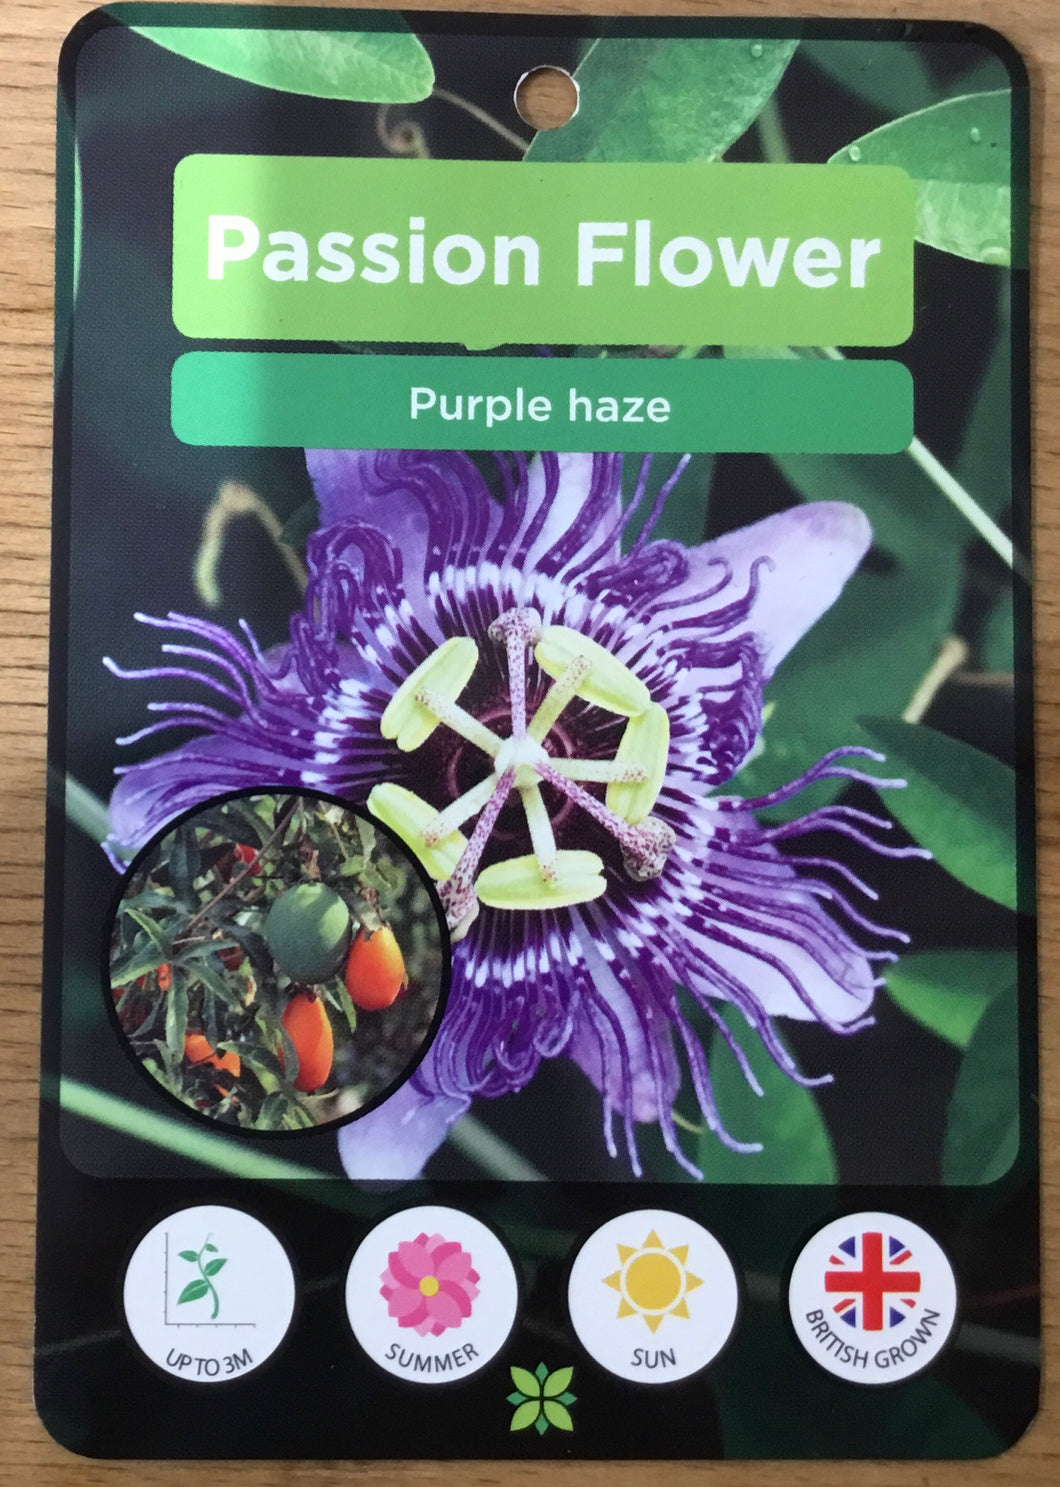 Passionflower: Passiflora Purple Haze